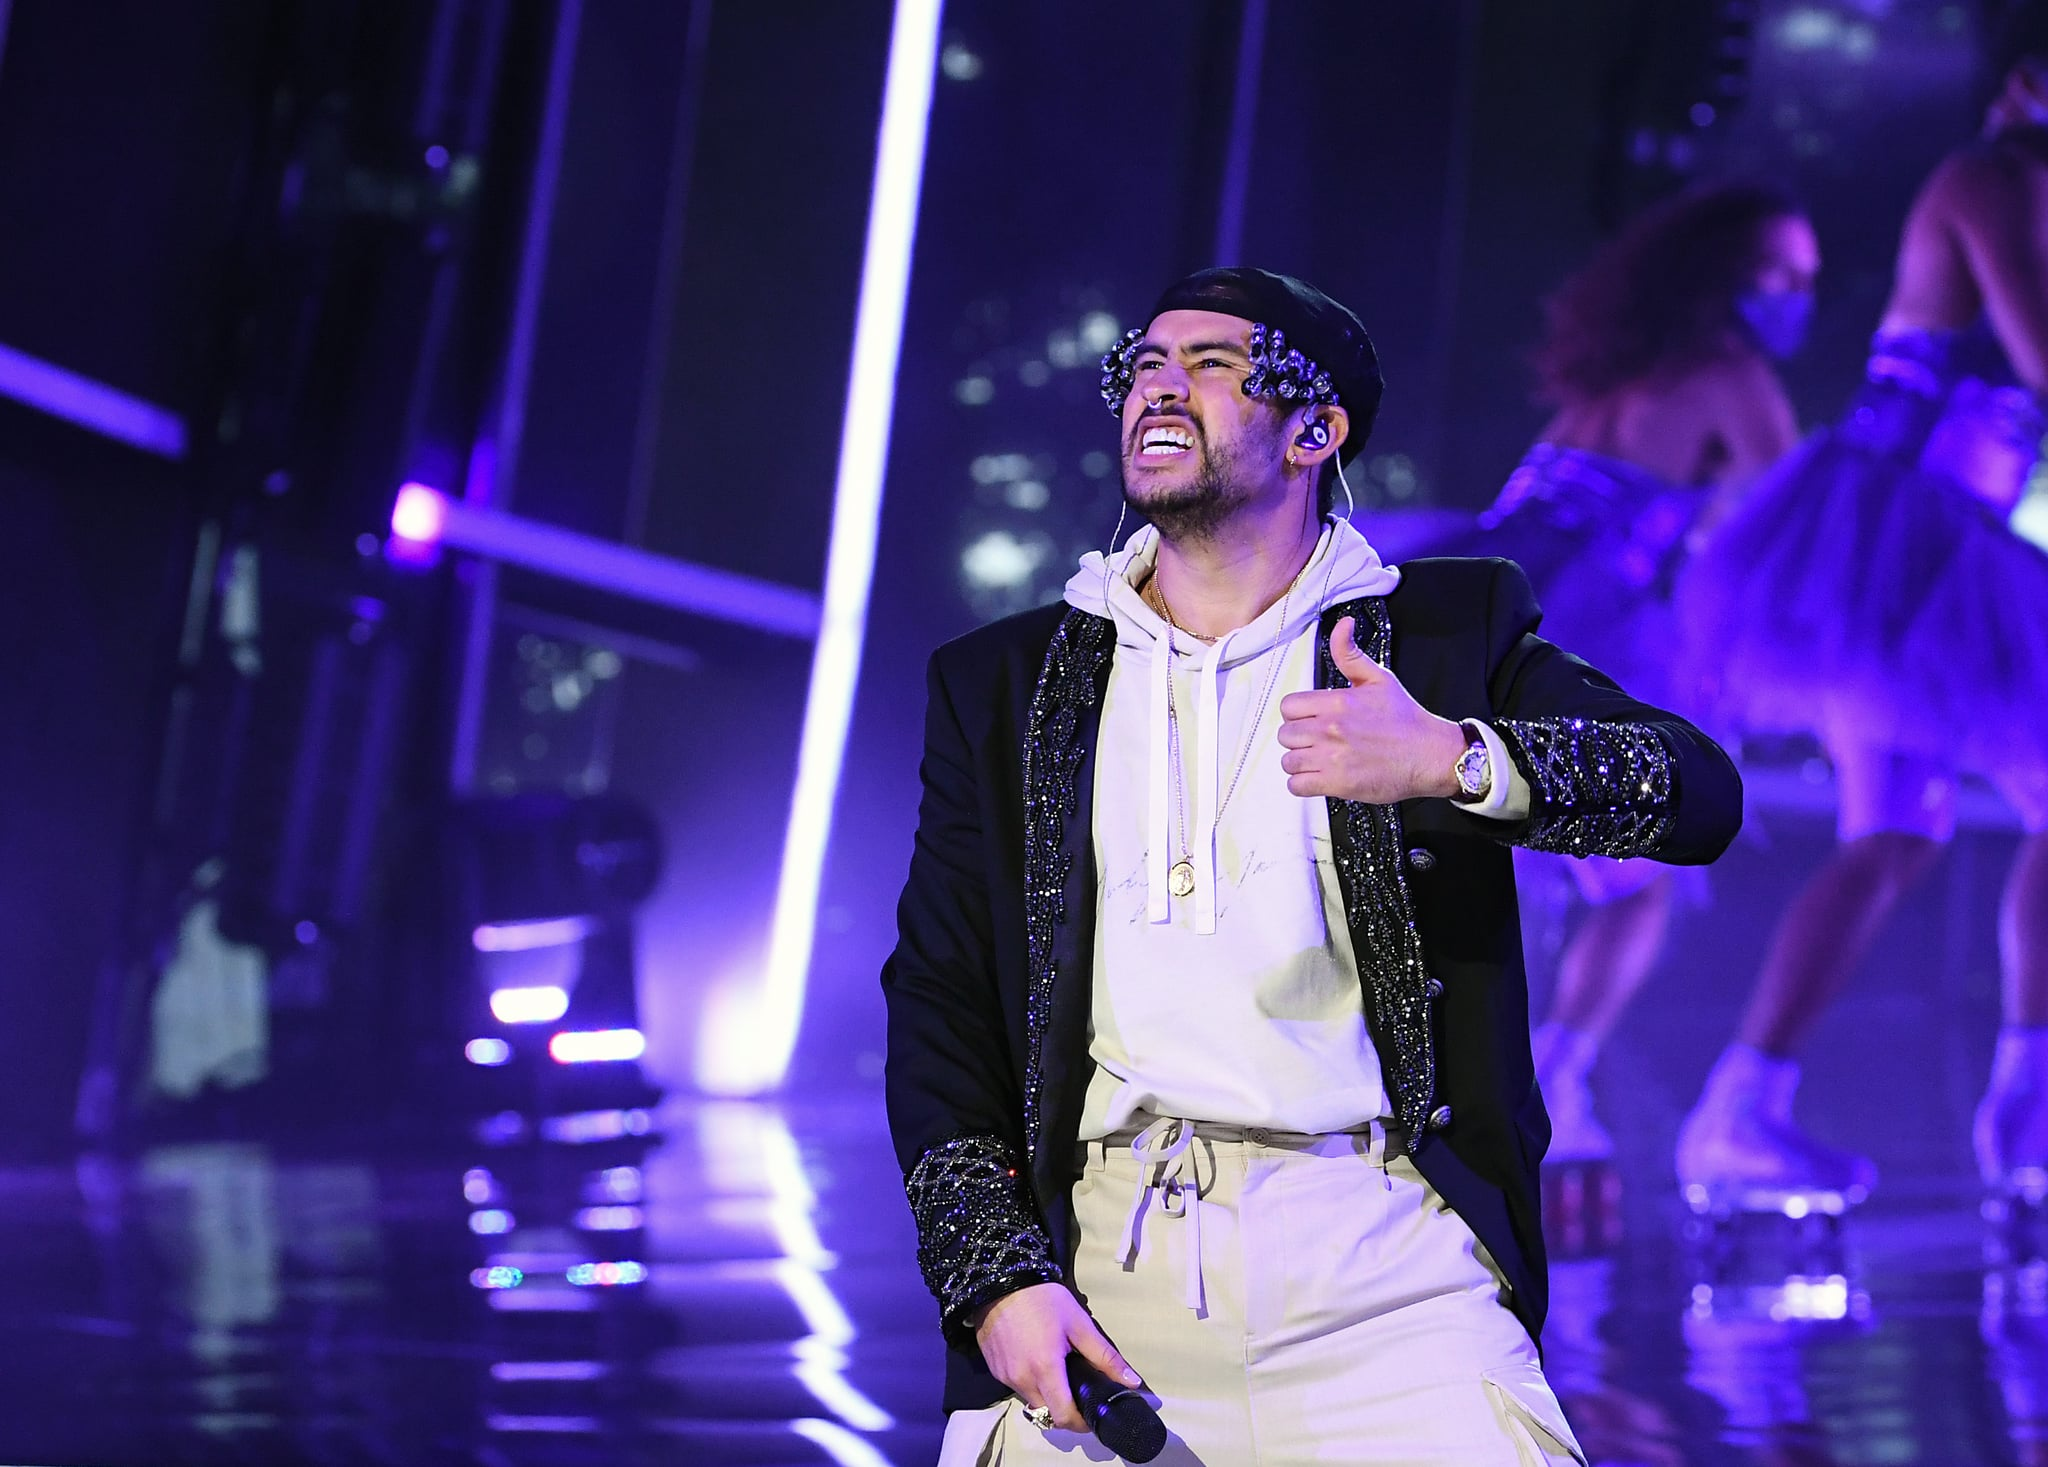 In this image released on October 13, Bad Bunny rehearses at the 2020 Billboard Music Awards, broadcast on October 14, 2020 at the Dolby Theatre in Los Angeles, CA.